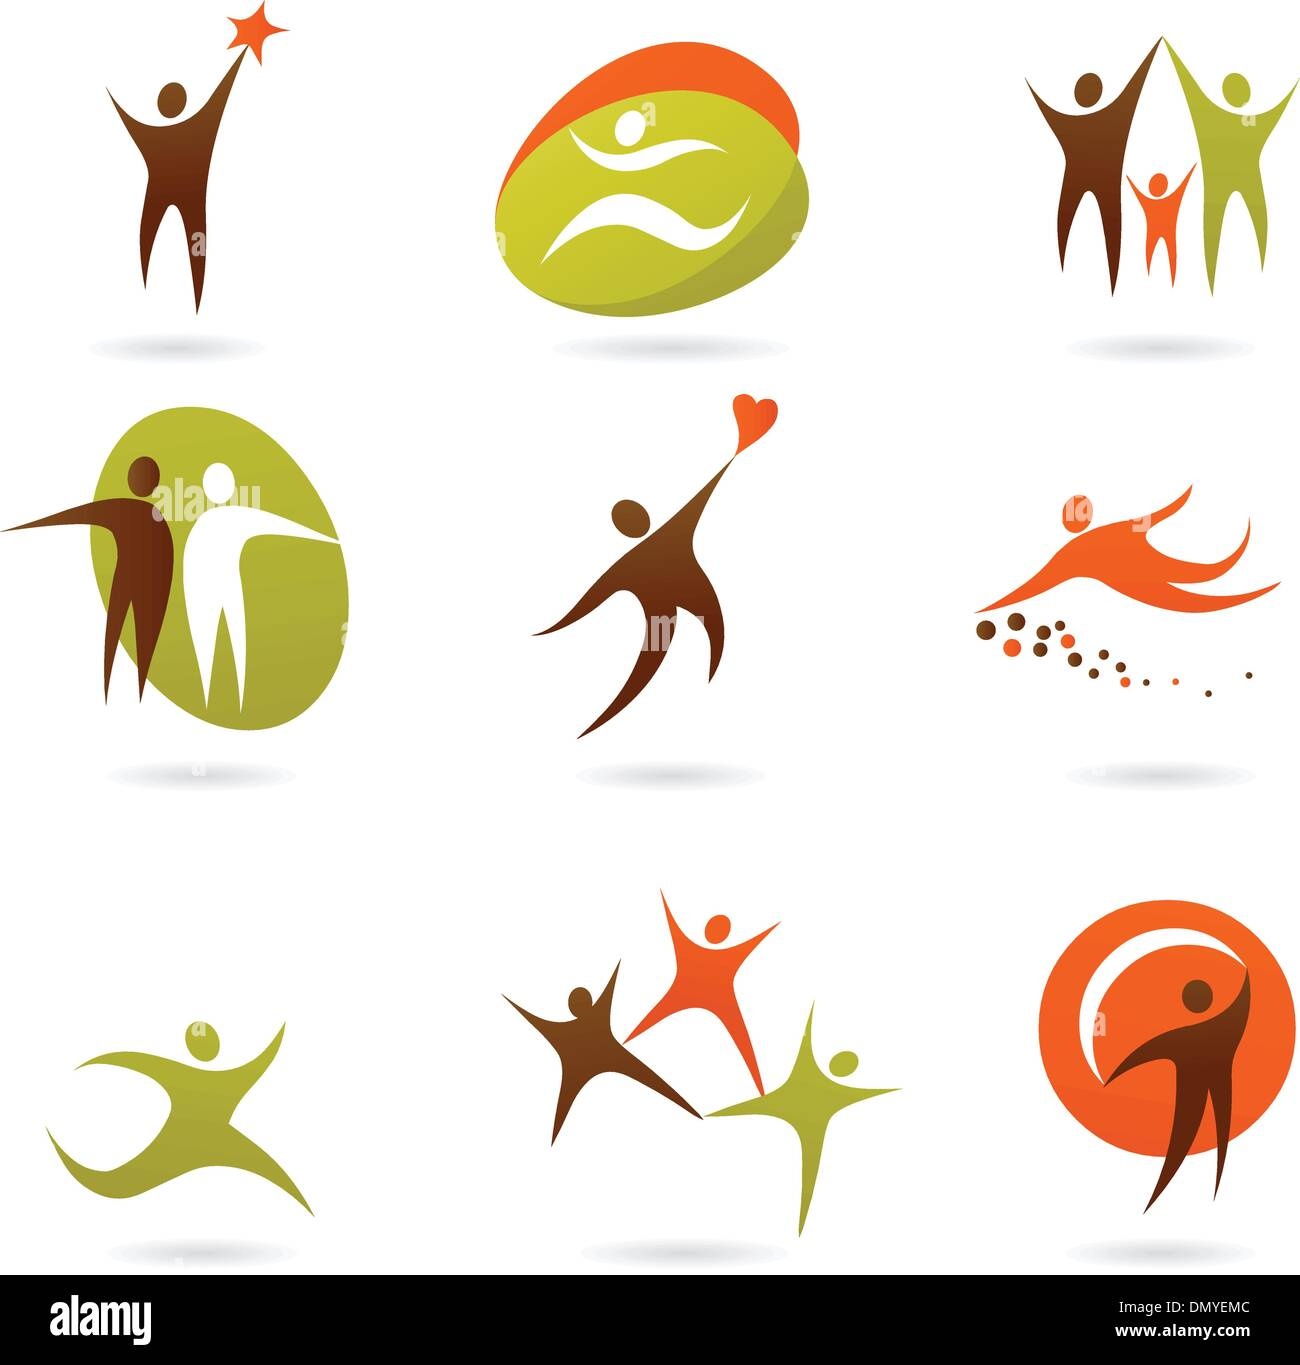 Collection of abstract people logos - 16 - Stock Image